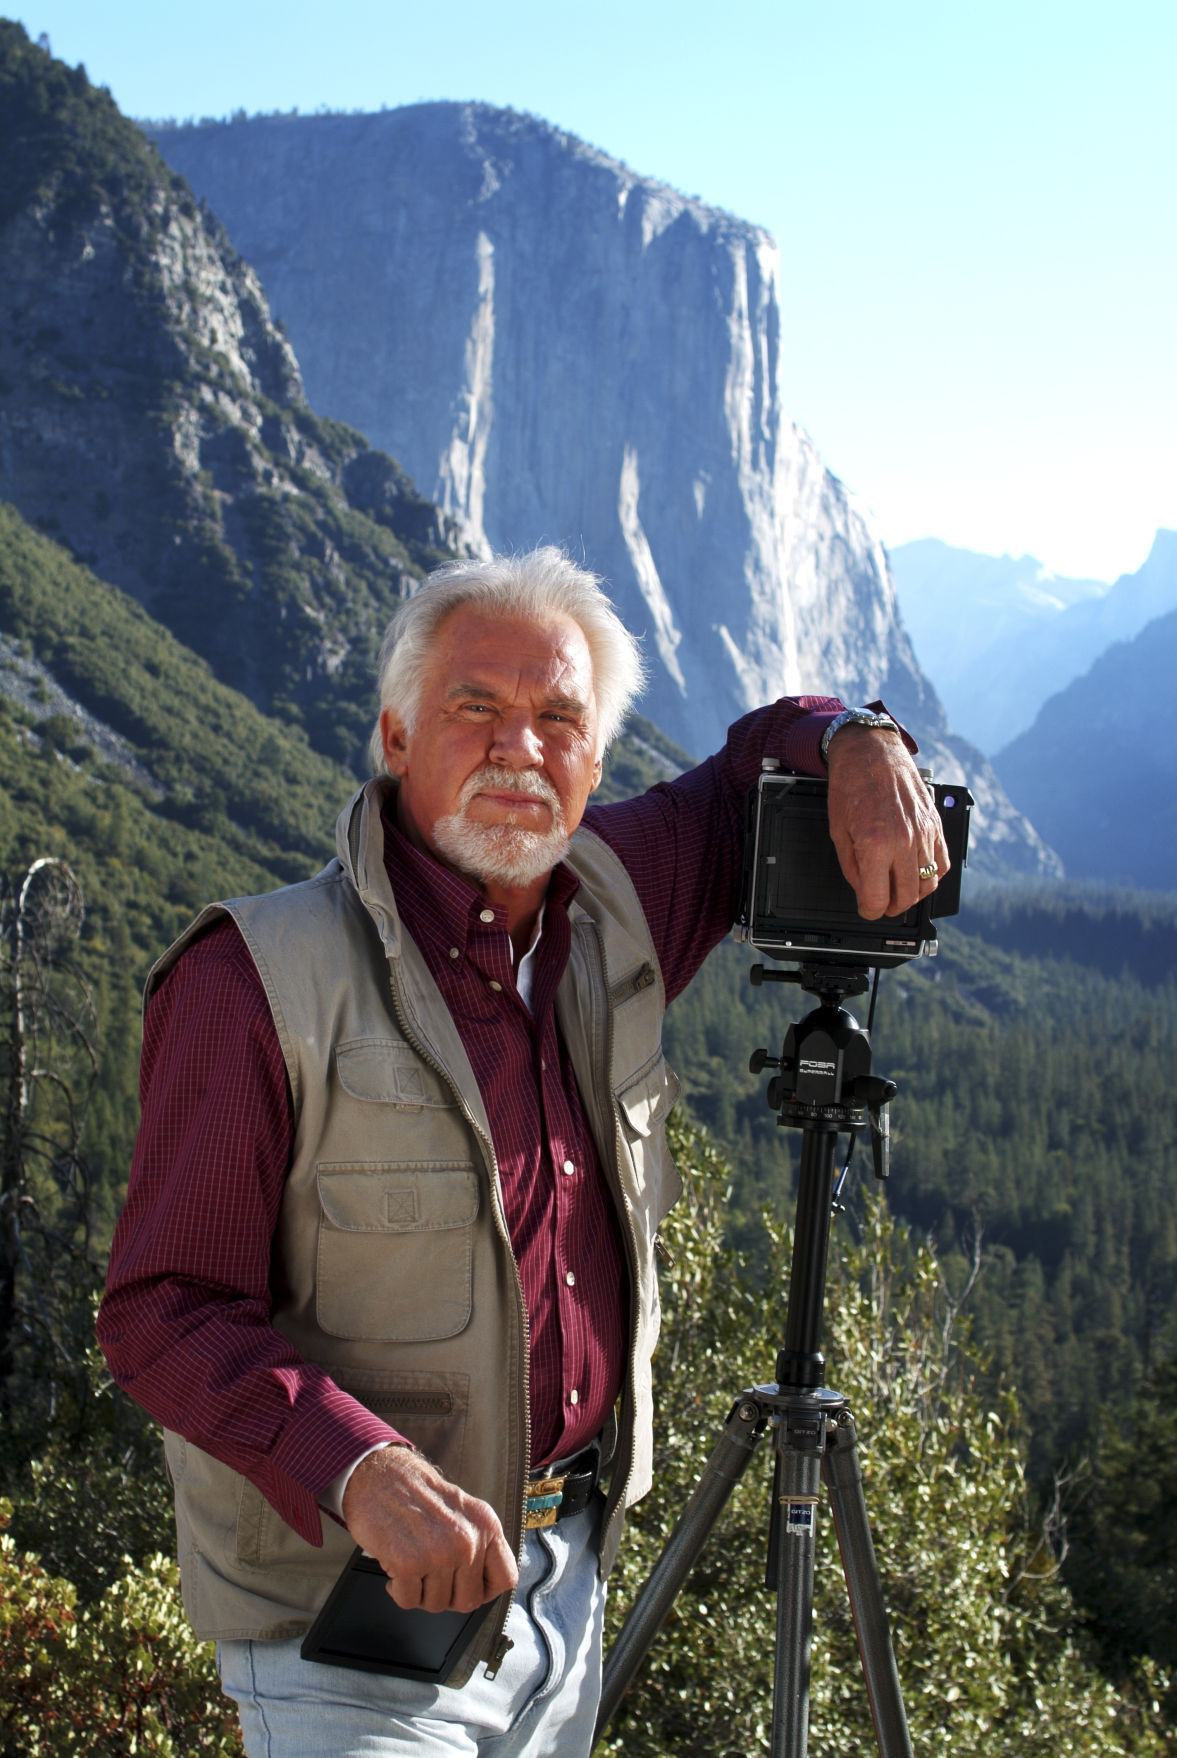 Singer, songwriter, record producer, actor and author Kenny Rogers will receive the inaugural IPHF Lifetime Achievement Award. Handout photo